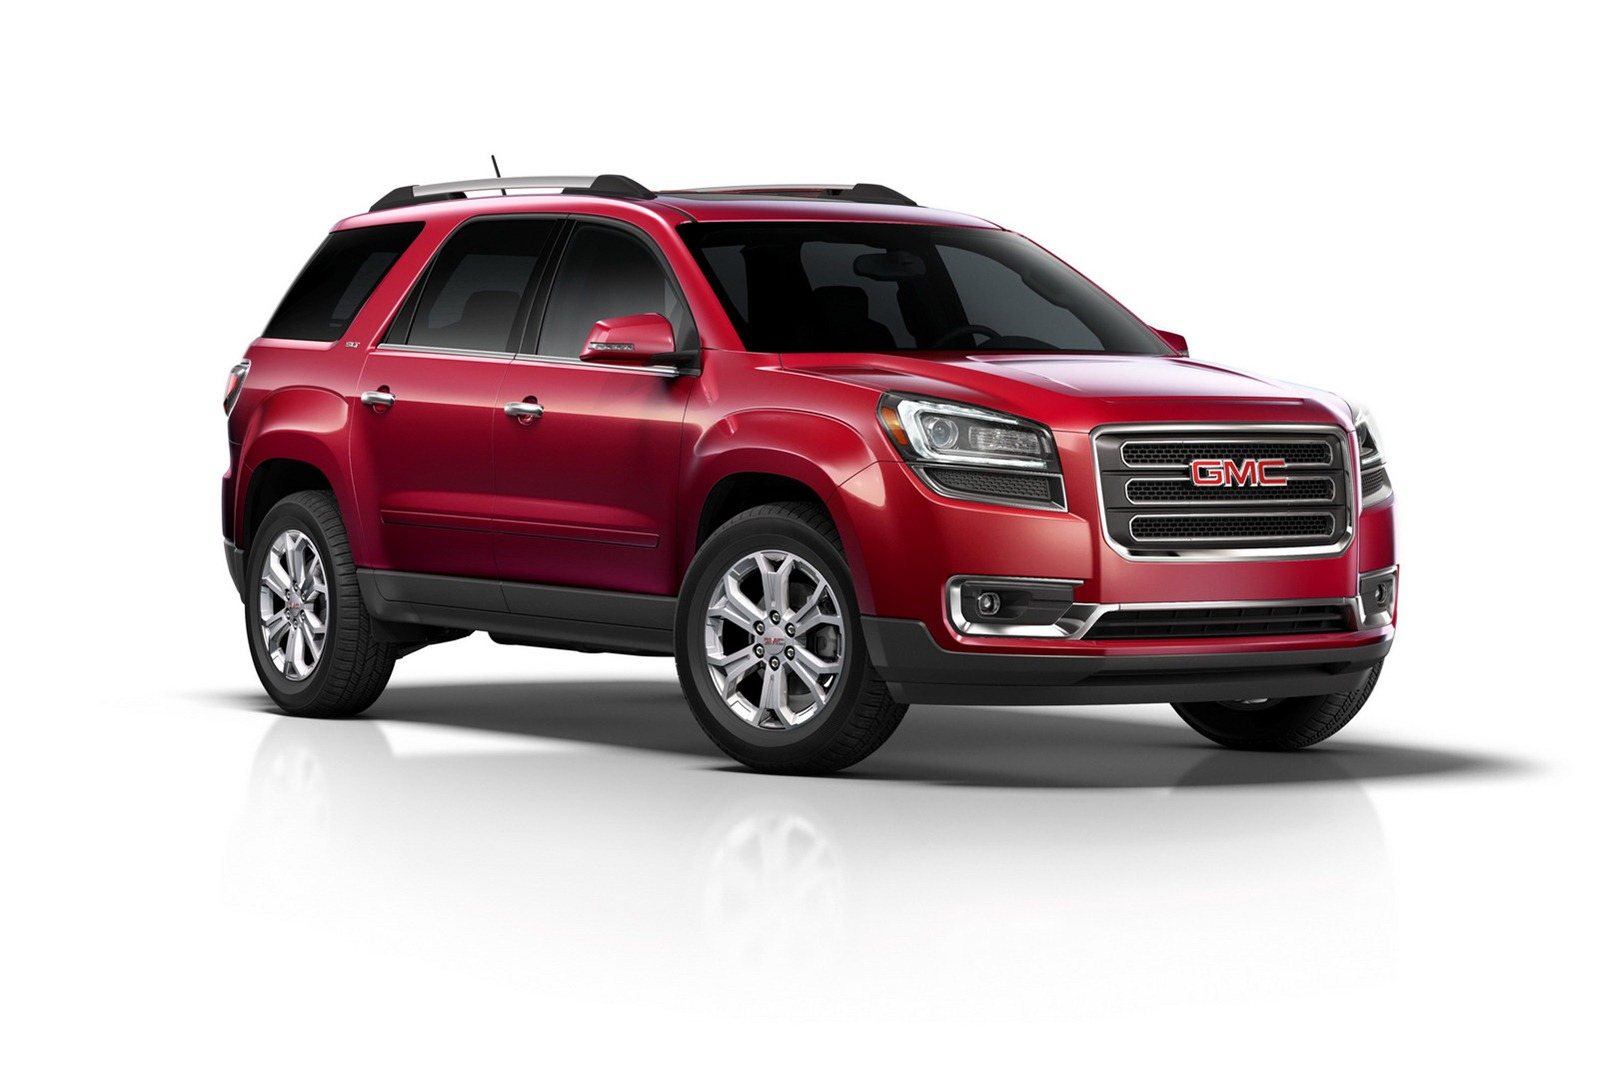 2013 gmc acadia and acadia denali unveiled in chicago autoevolution. Black Bedroom Furniture Sets. Home Design Ideas